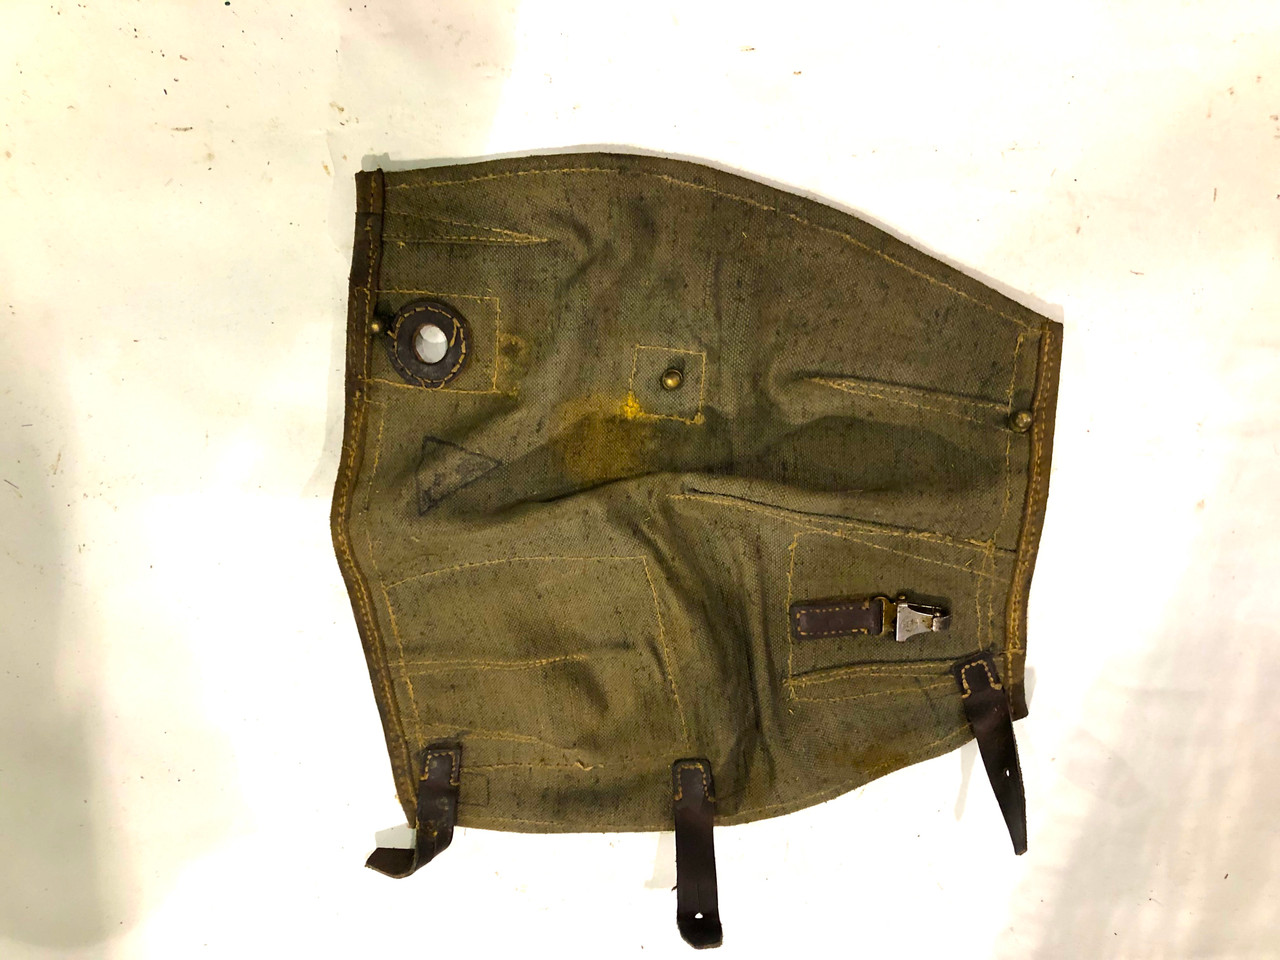 MG34 Action Cover (Short Length)